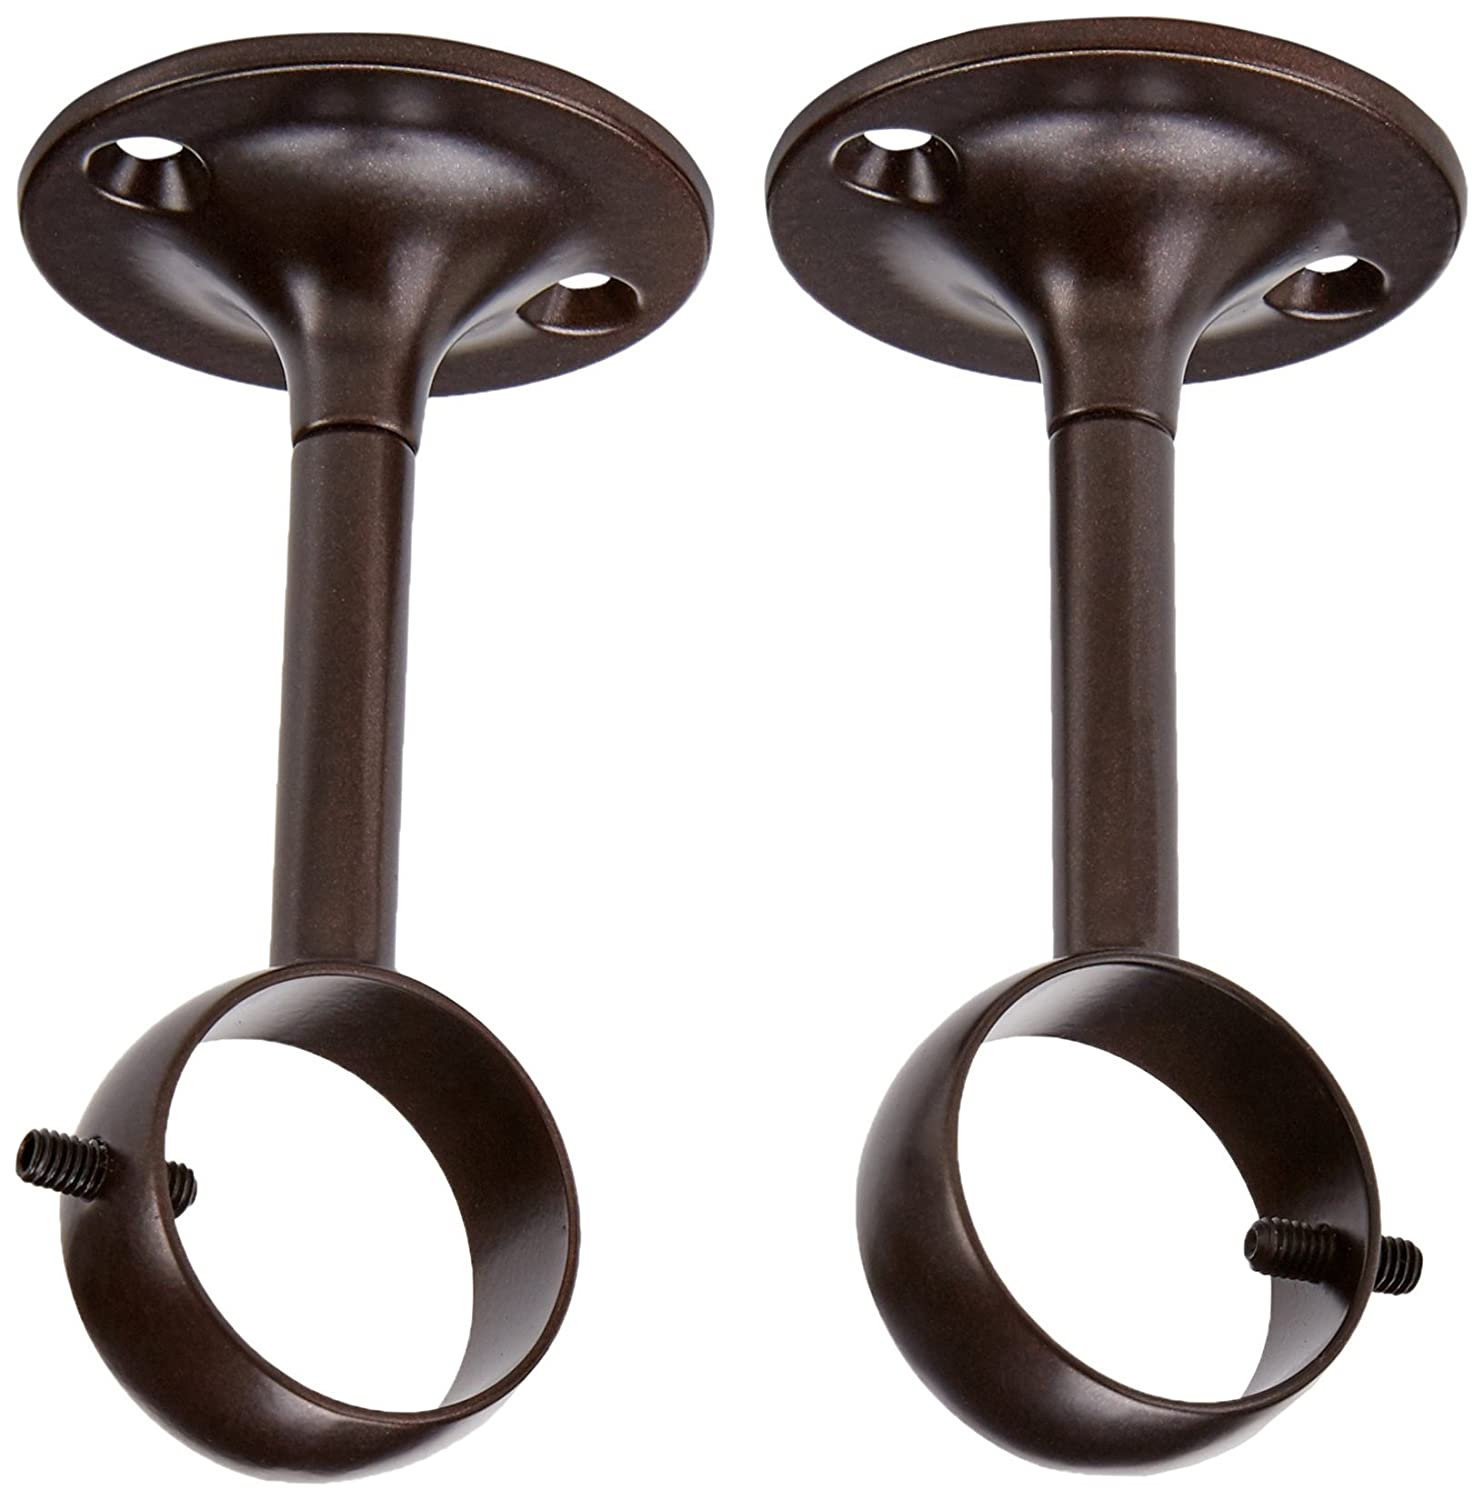 AmazonBasics Ceiling-Mount Bracket, Set of 2, Bronze